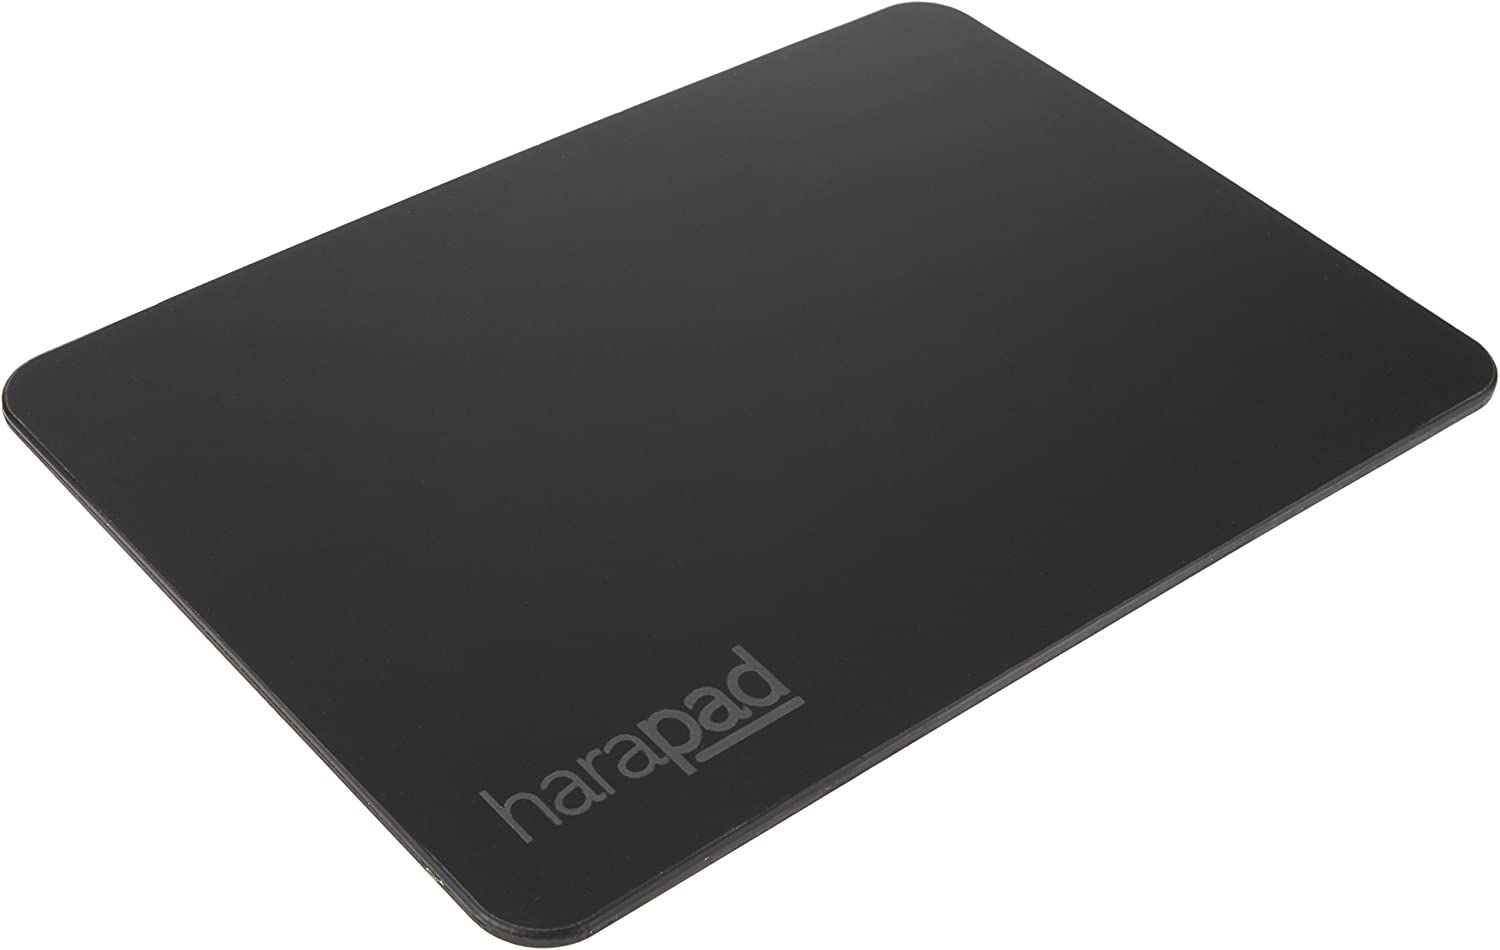 HARApad EMF Protection - Laptop Radiation & Heat Shield - Multiple Size and Finish Options Available